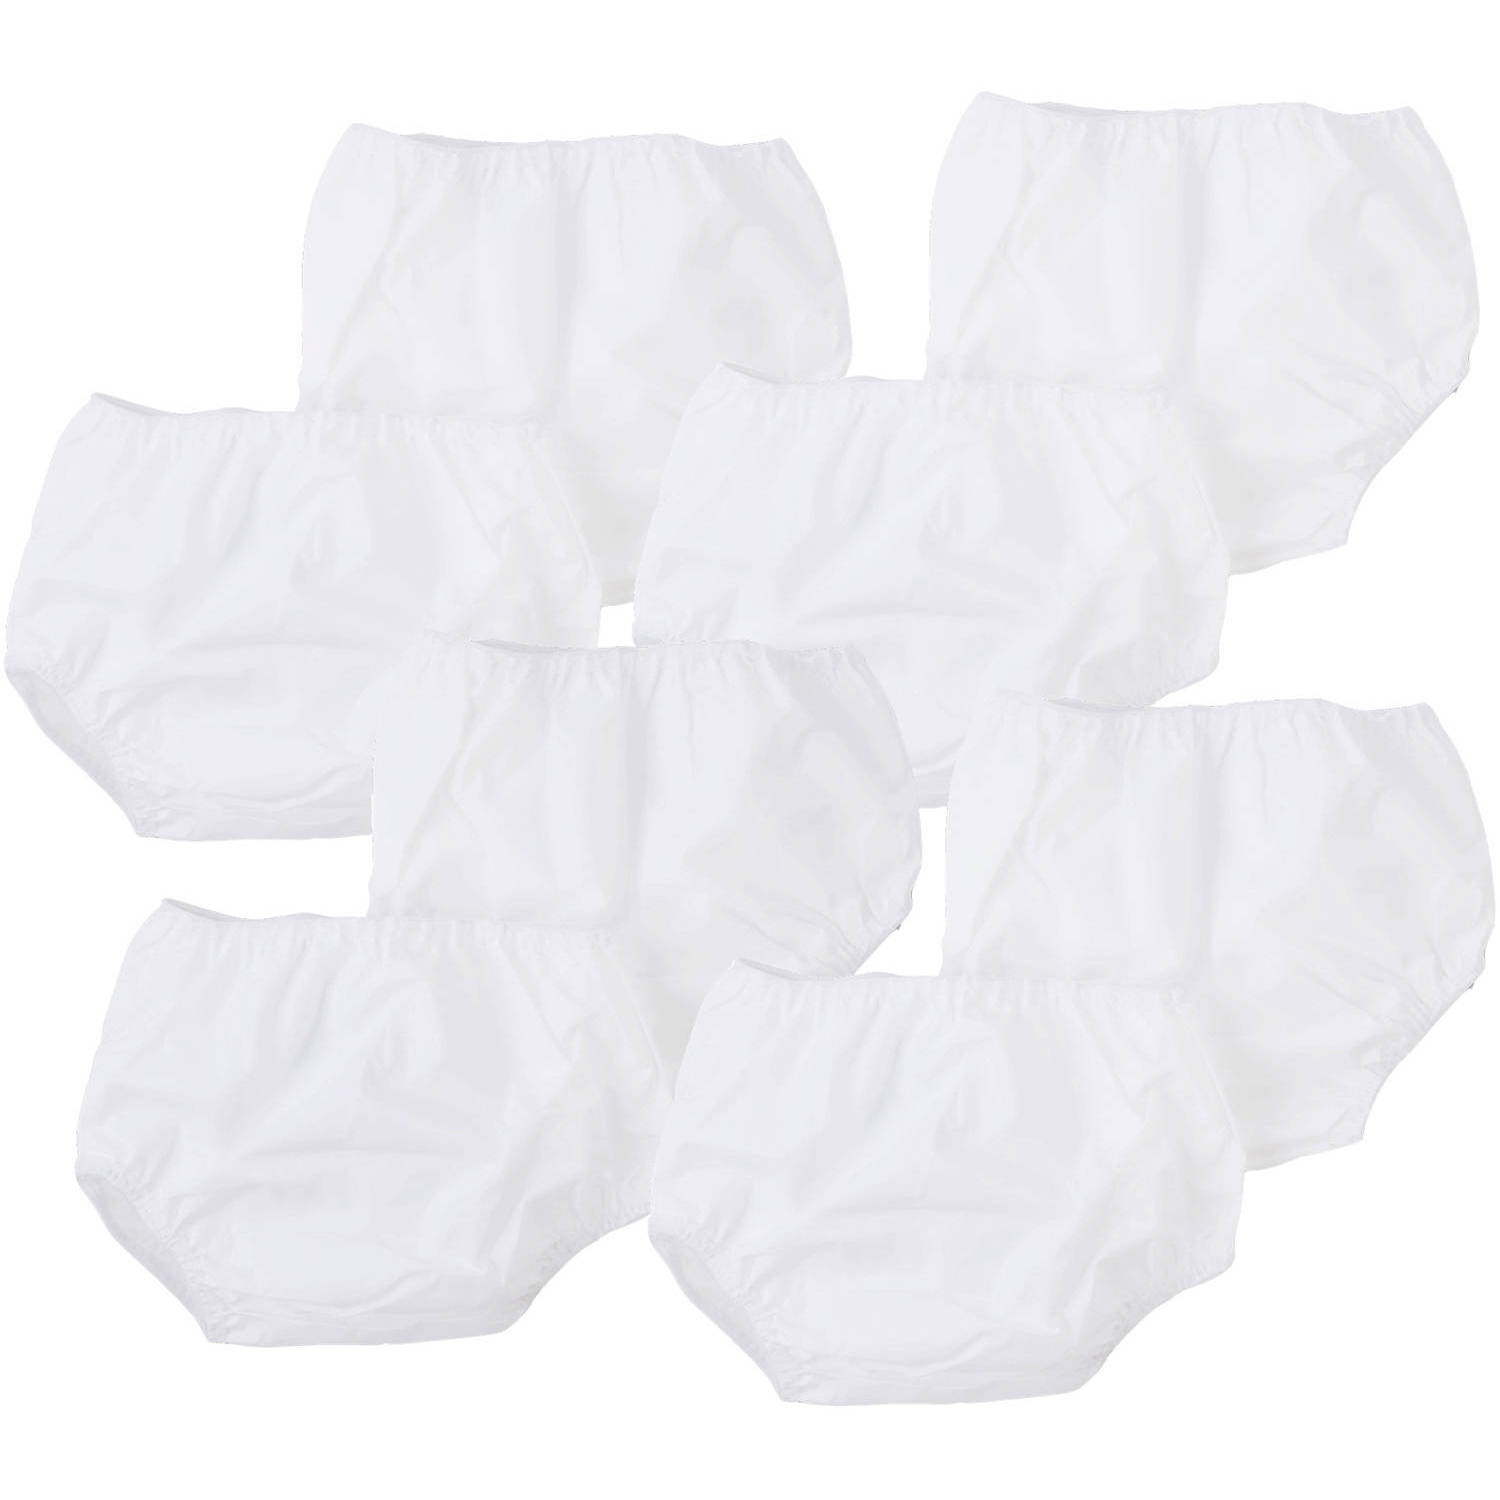 Gerber Newborn Baby White Waterproof Pants - 8 Pack